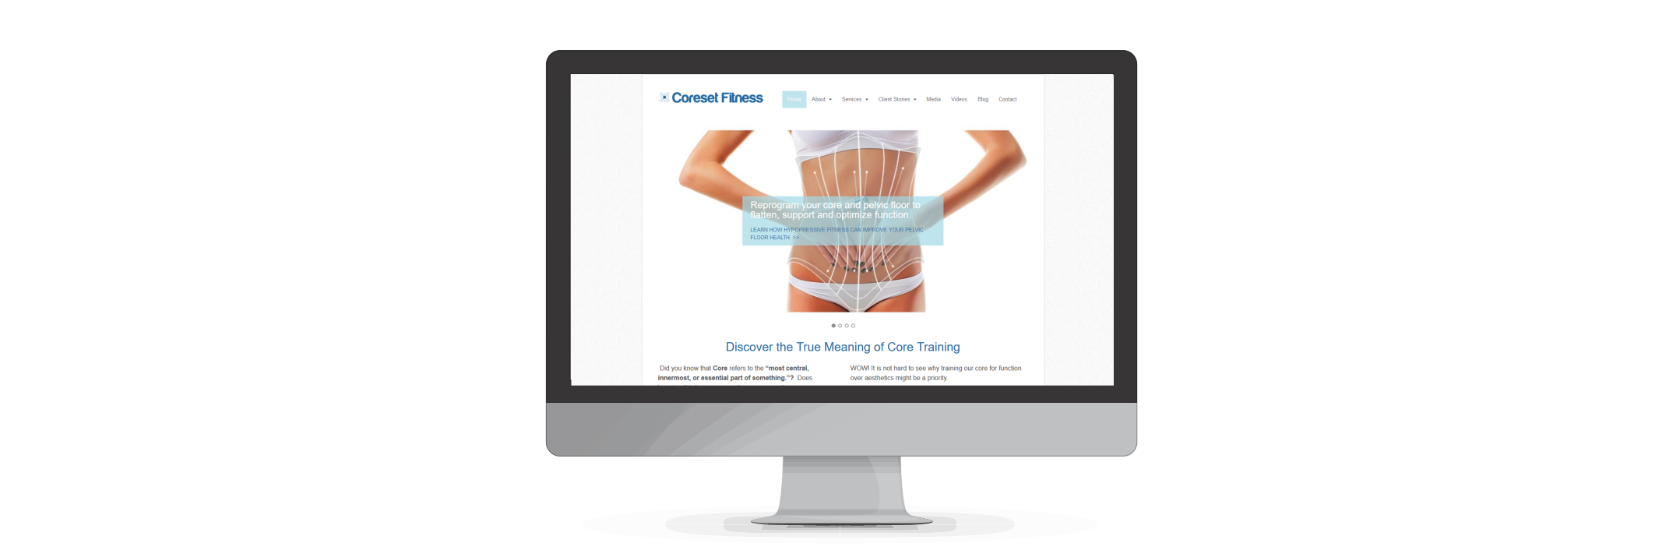 Coreset fitness, webdesign by www.puzzleboxcommunications.com